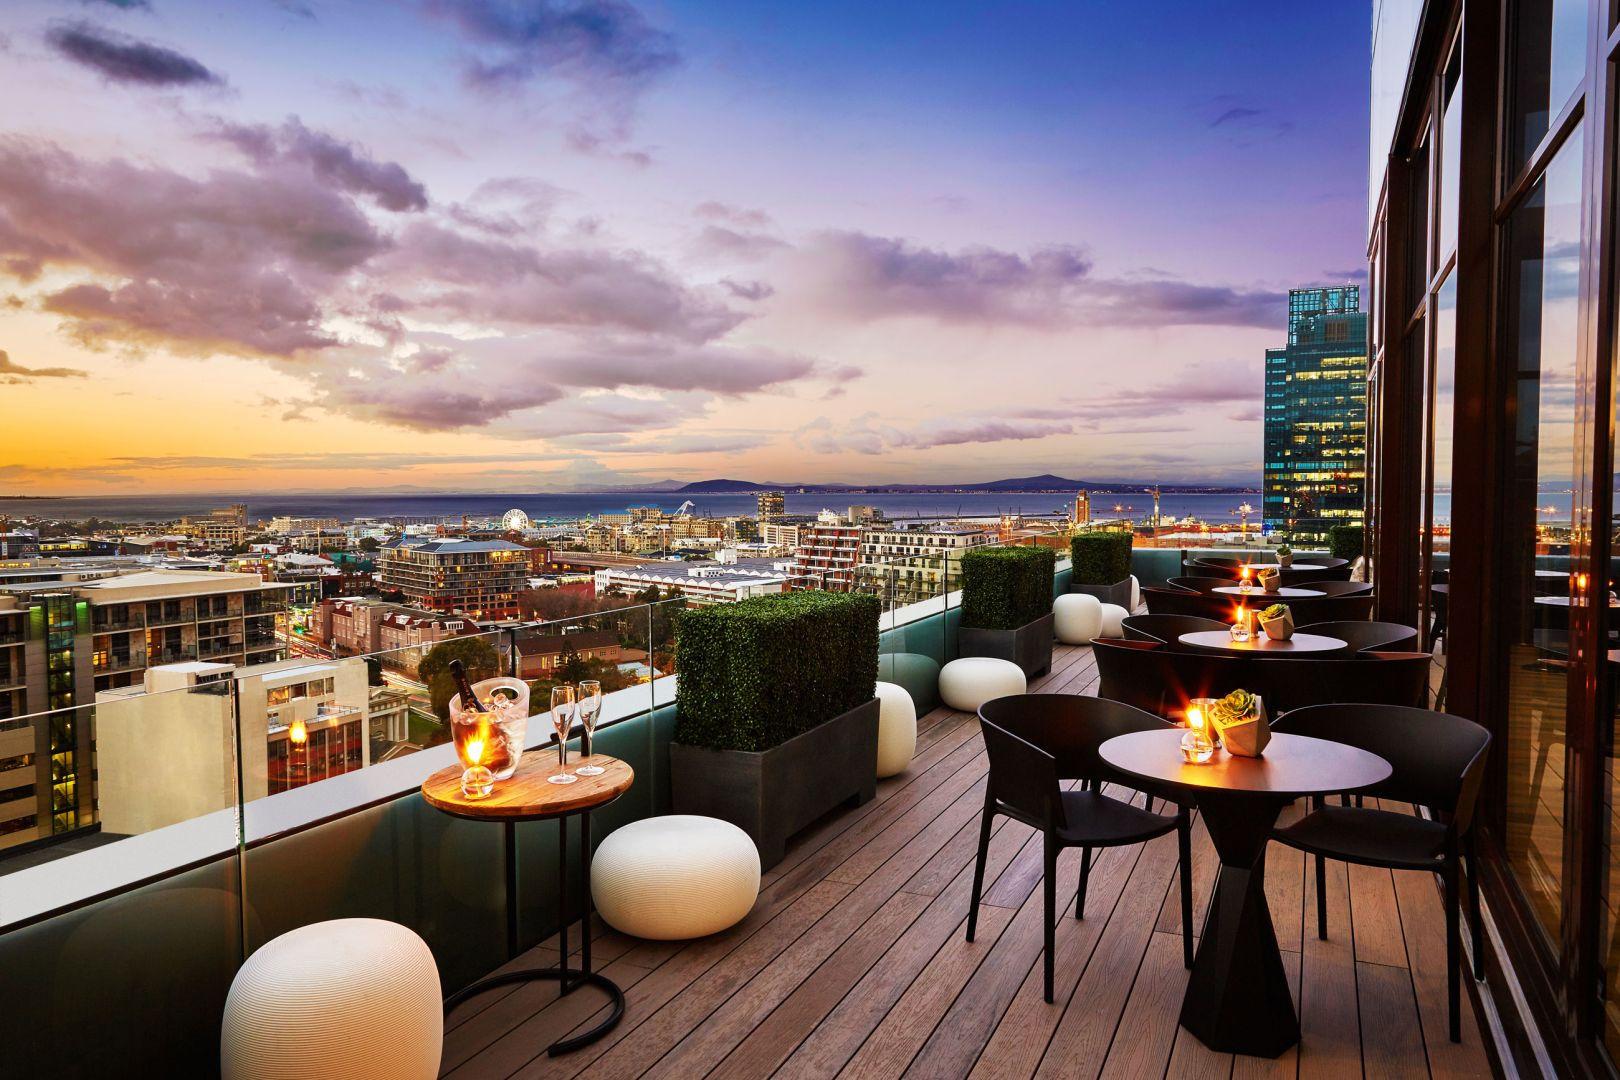 Cape Town Rooftop Bar